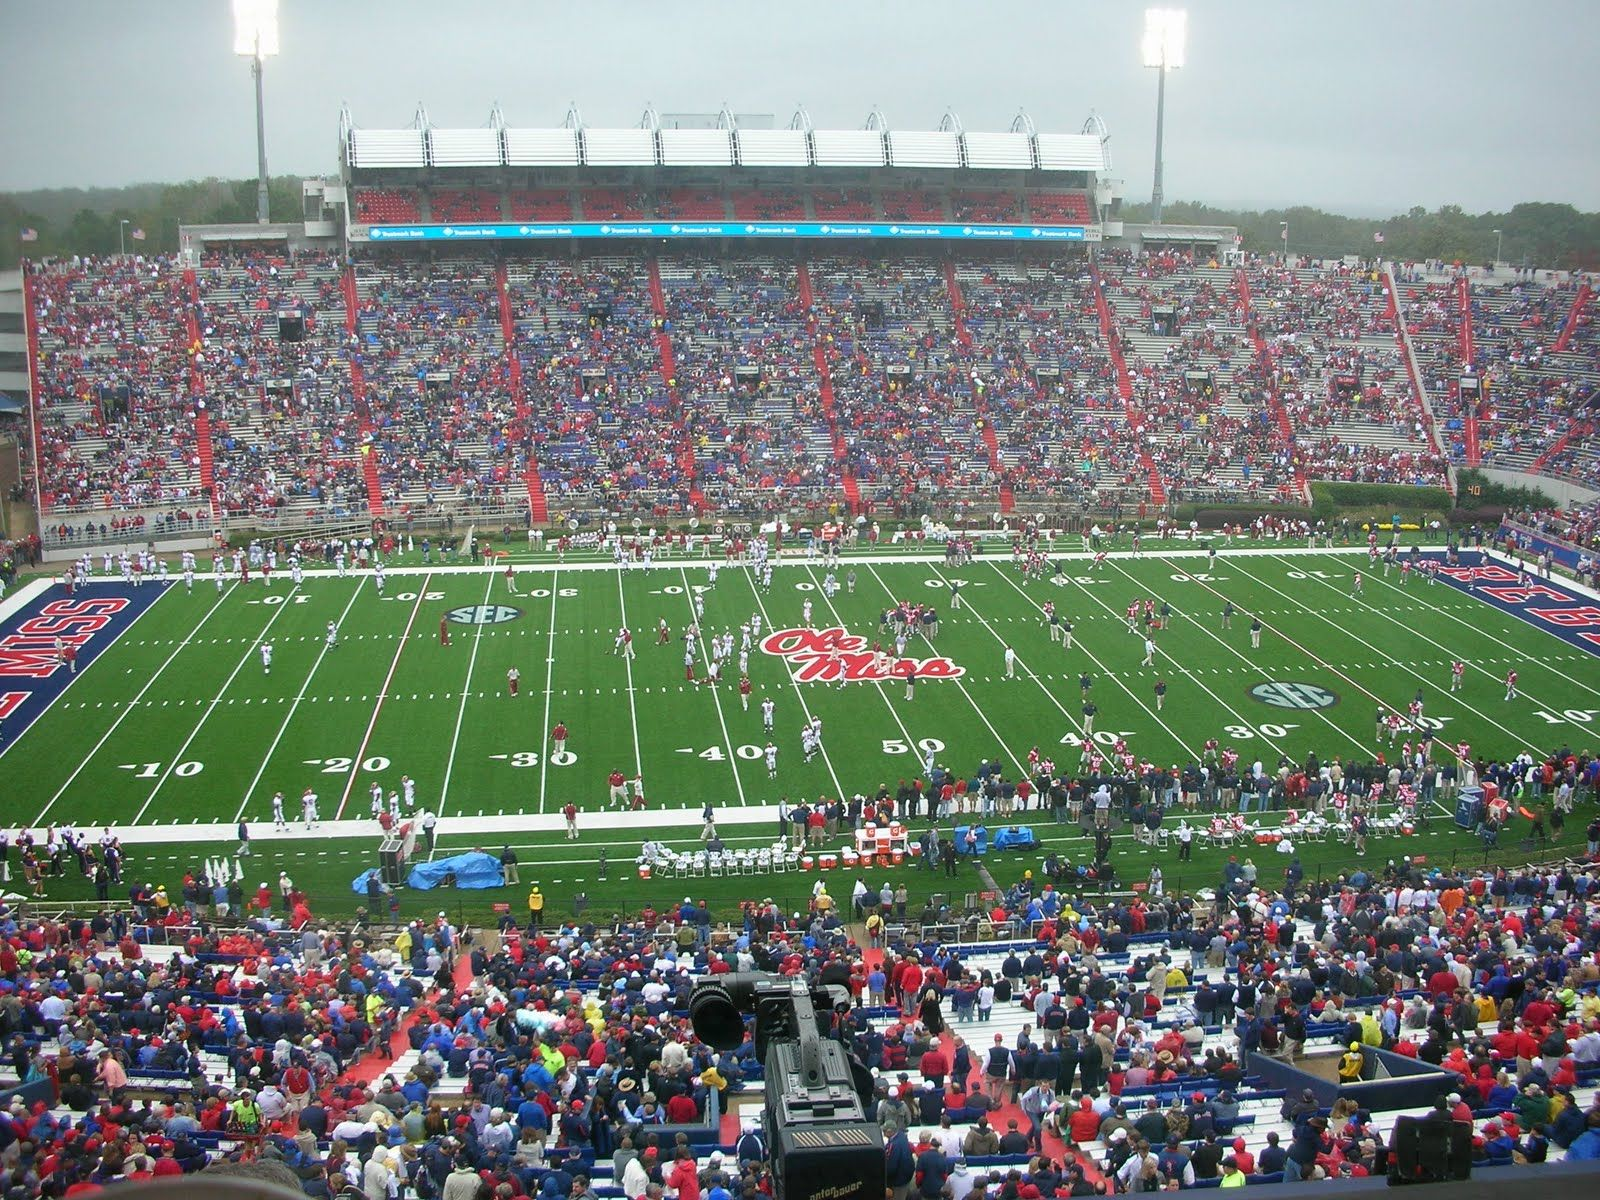 Ole Miss Football With Images Ole Miss Football The Grove Ole Miss Ole Miss Tailgating